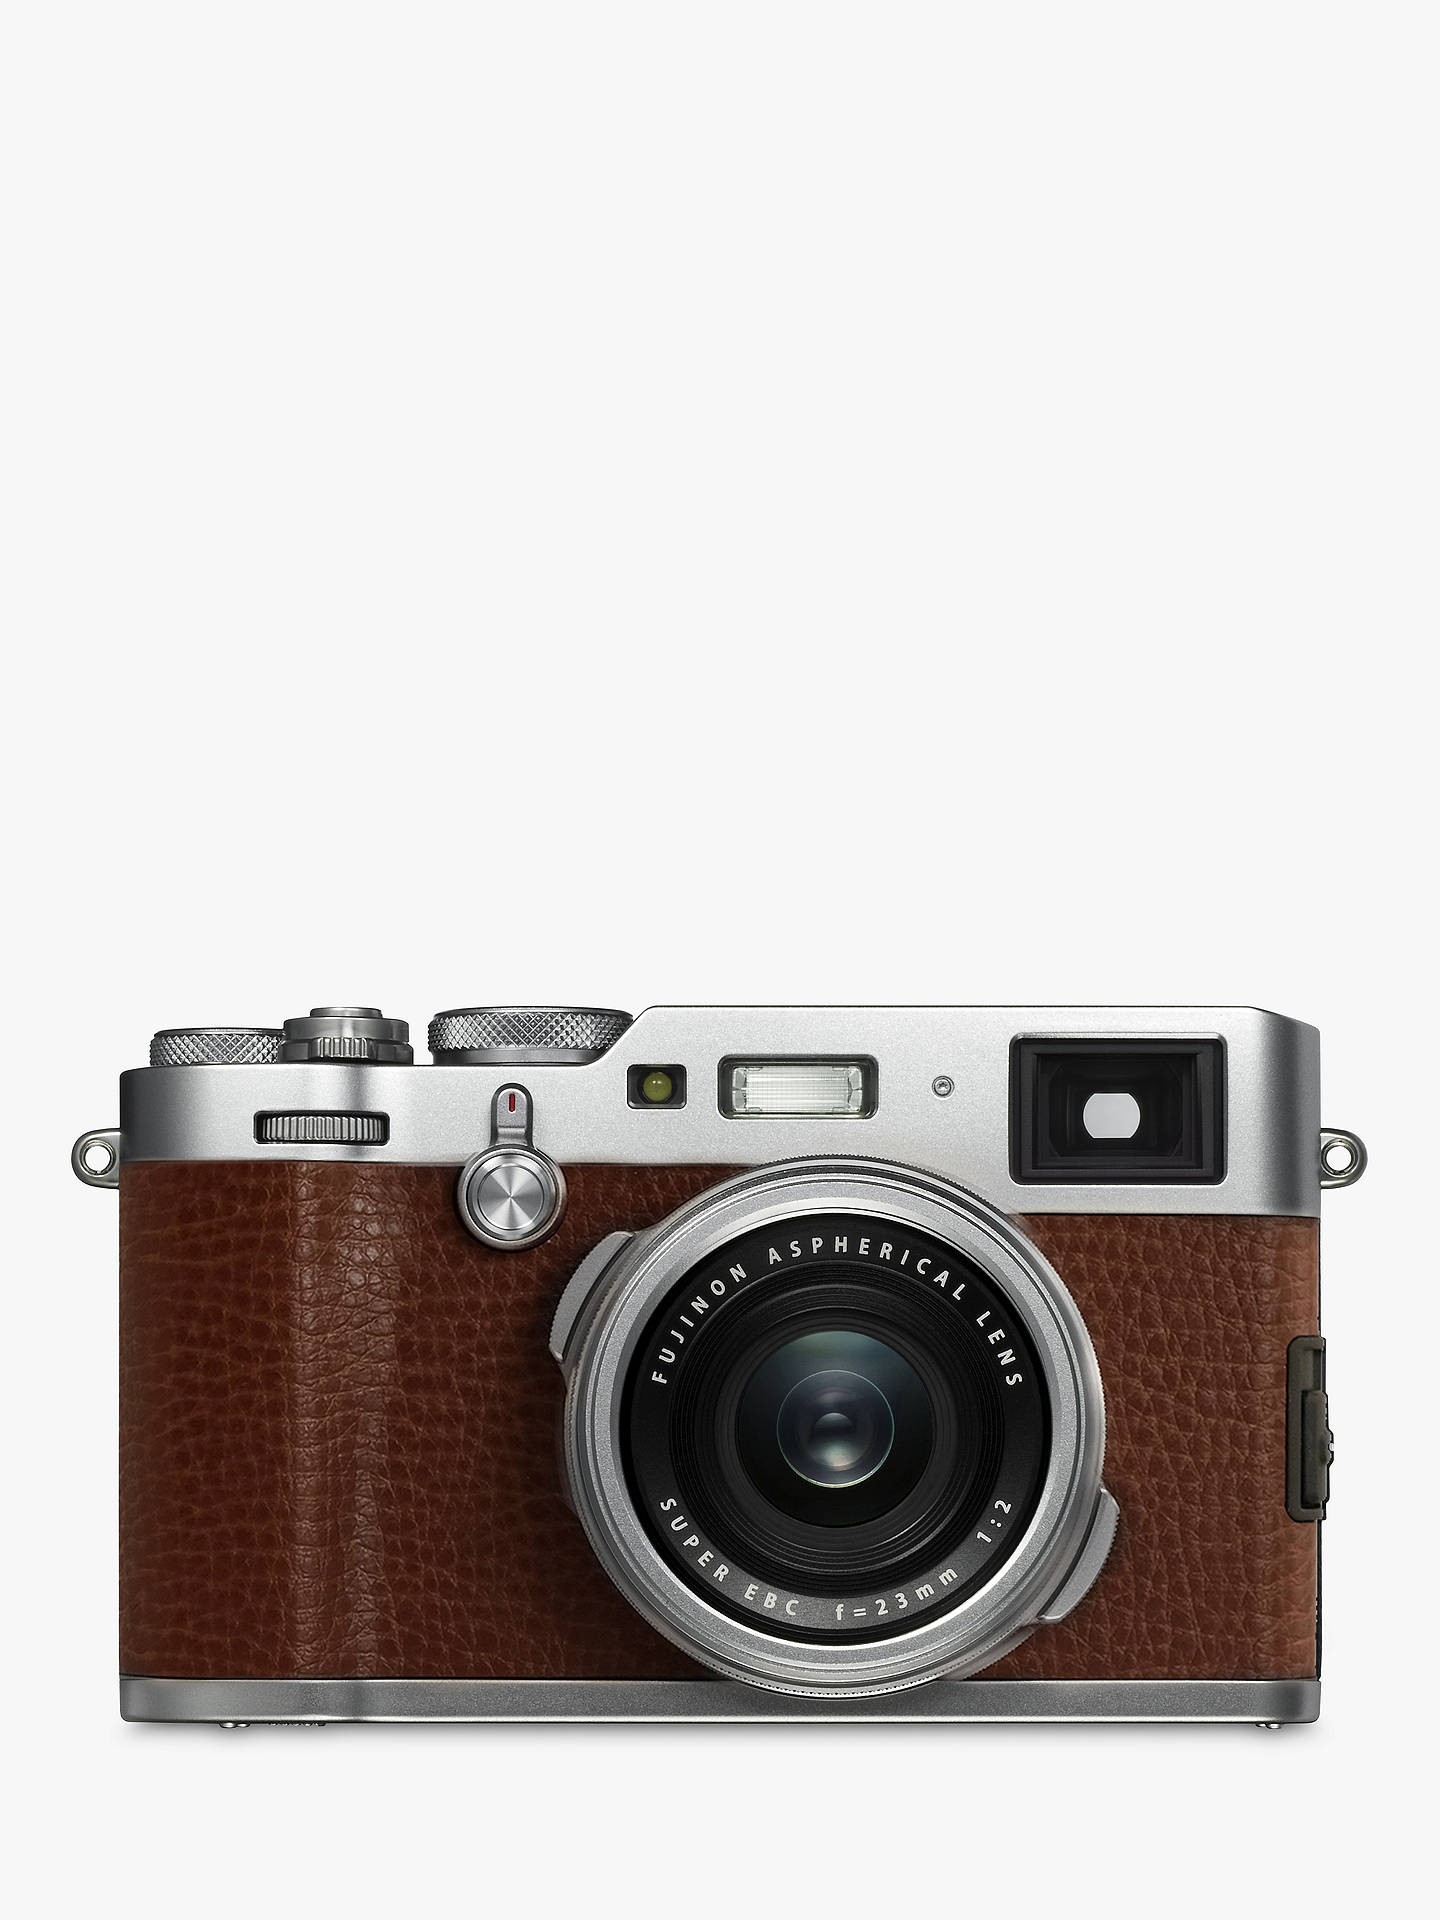 Fujifilm X100F Digital Compact Camera with 23mm Lens, 1080p Full HD,  24 3MP, Wi-Fi, Hybrid EVF/OVF, 3